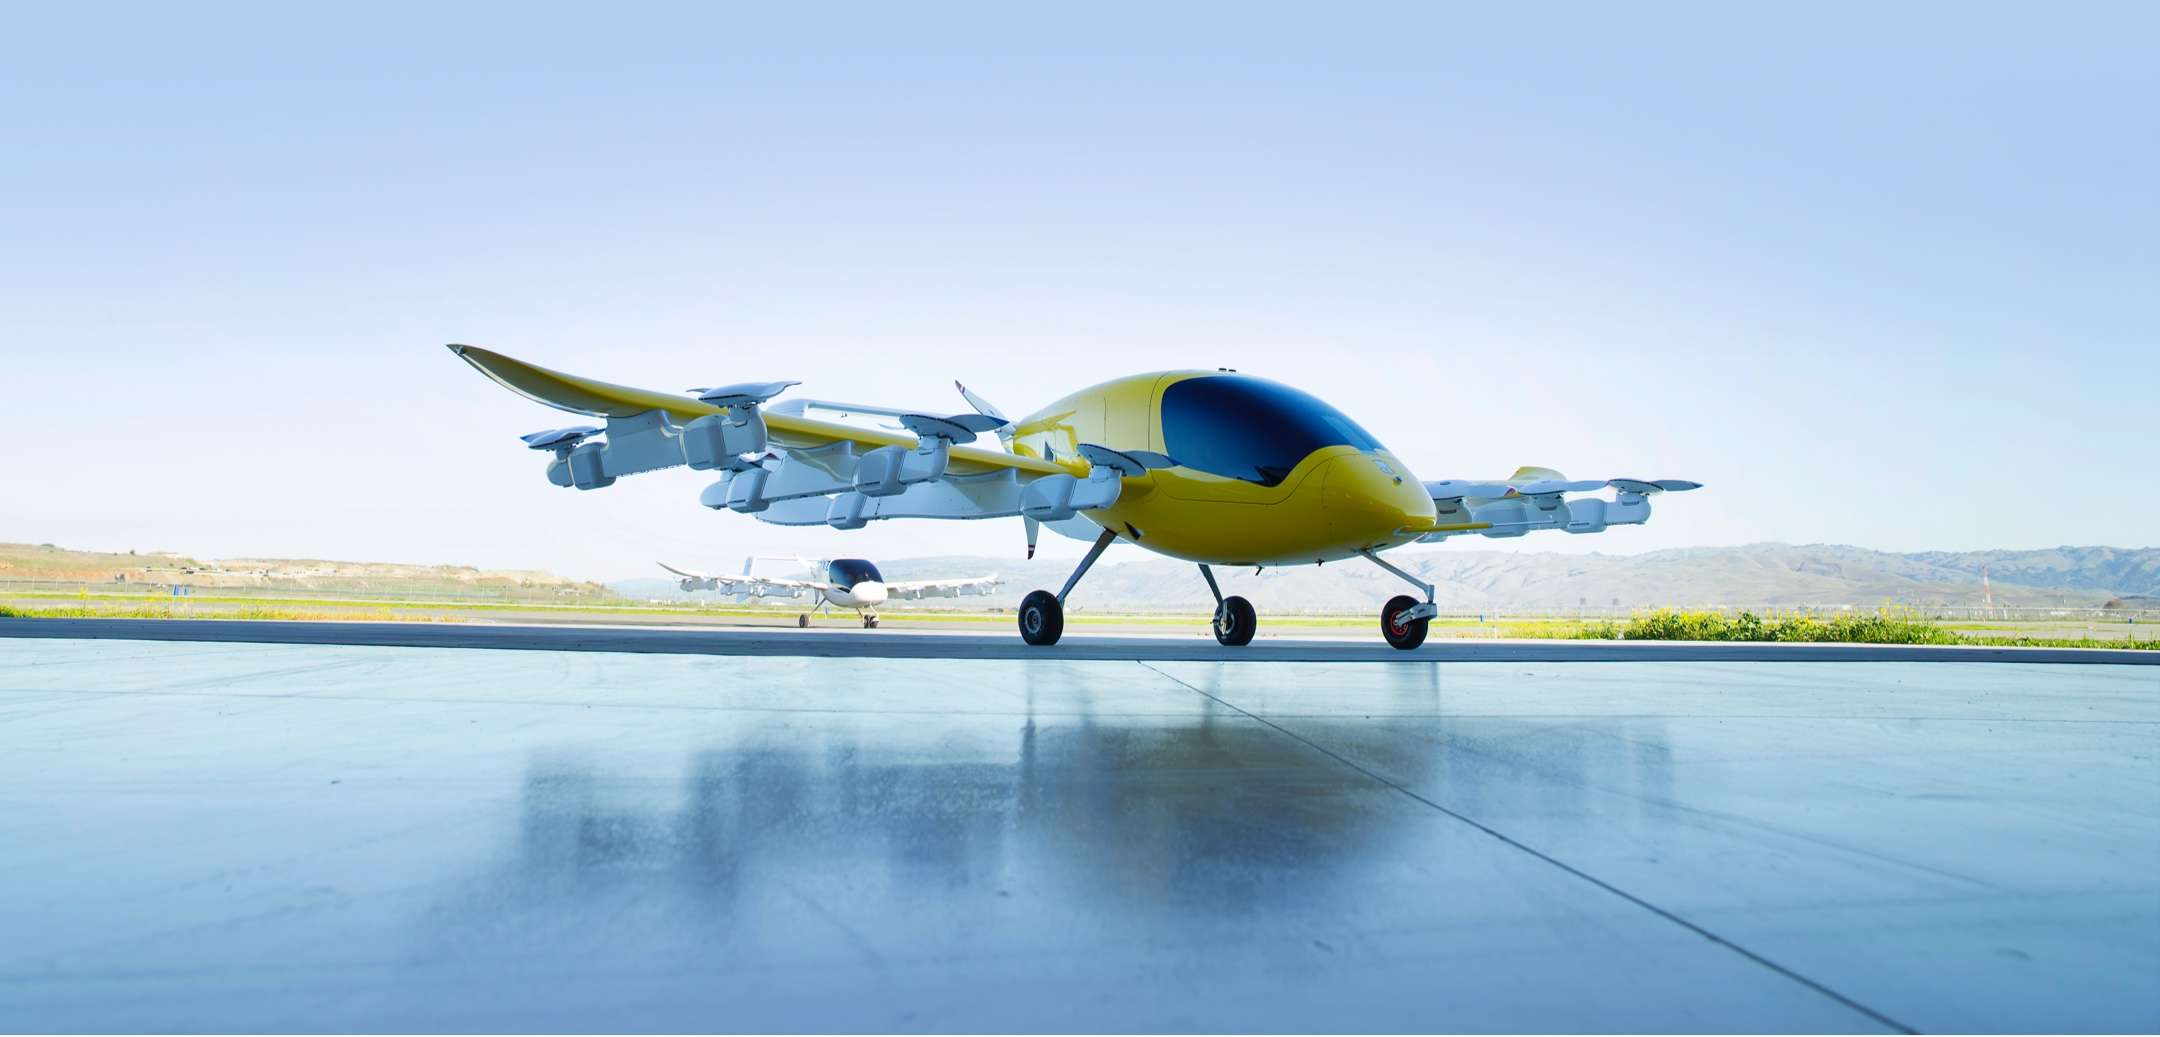 Cora is an electric 'sky Uber drone' from Google's Larry ...